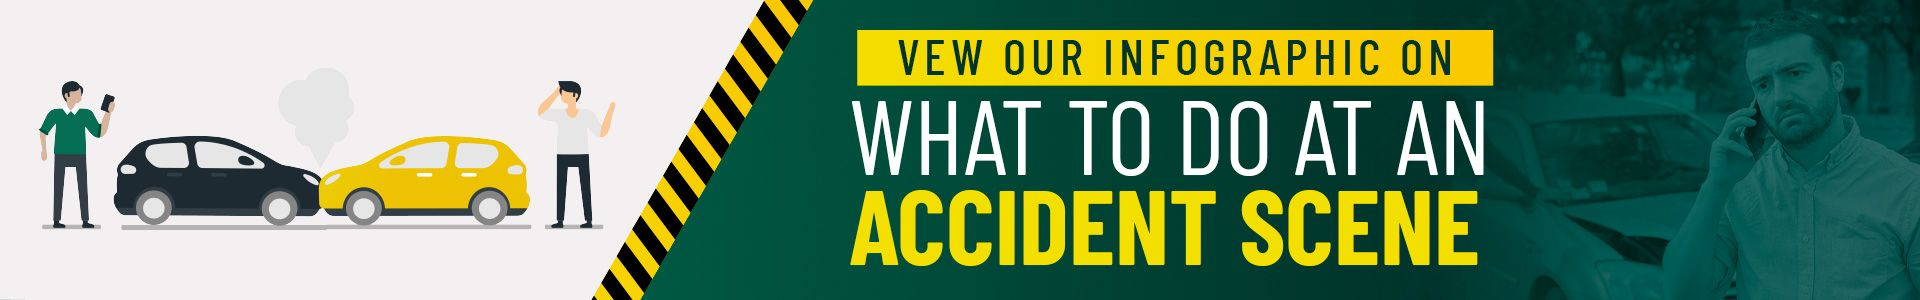 What to do at an accident scene